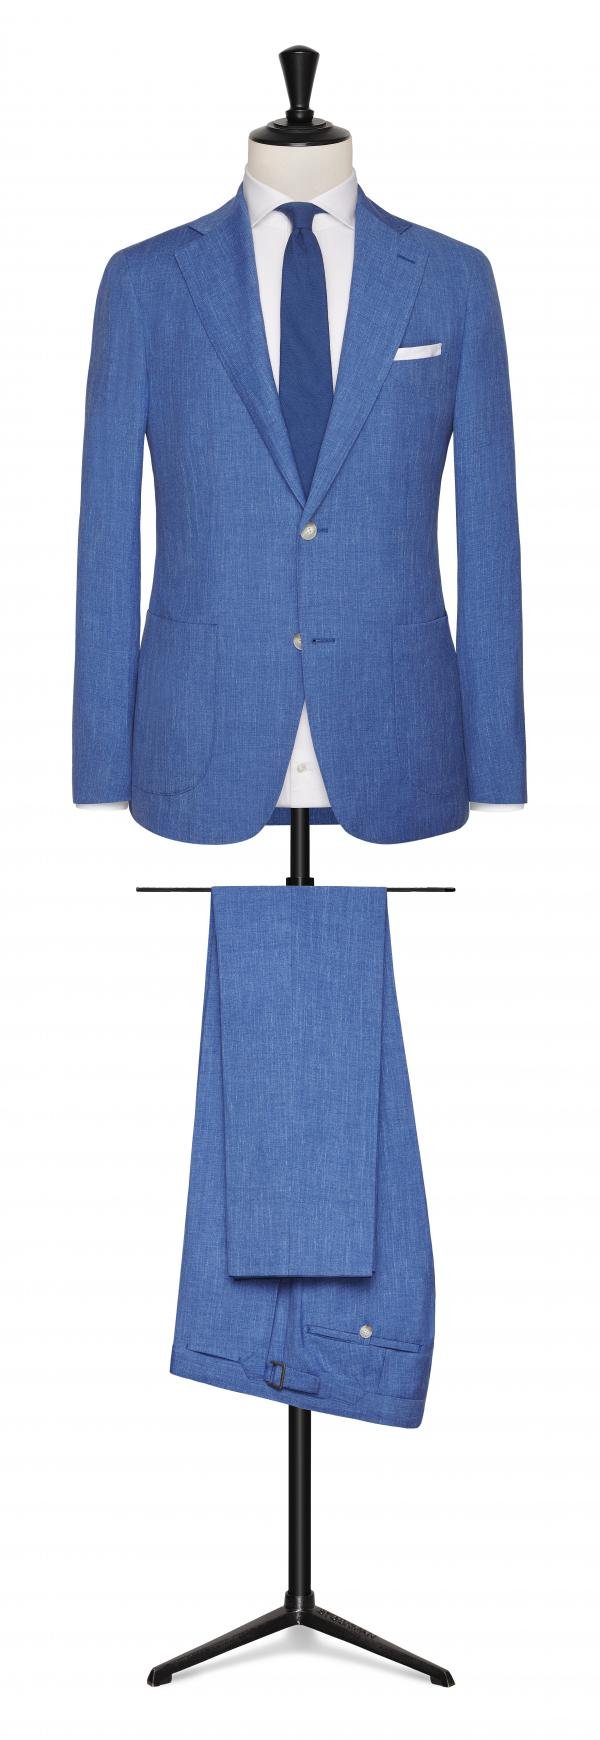 Made to measure wedding suit